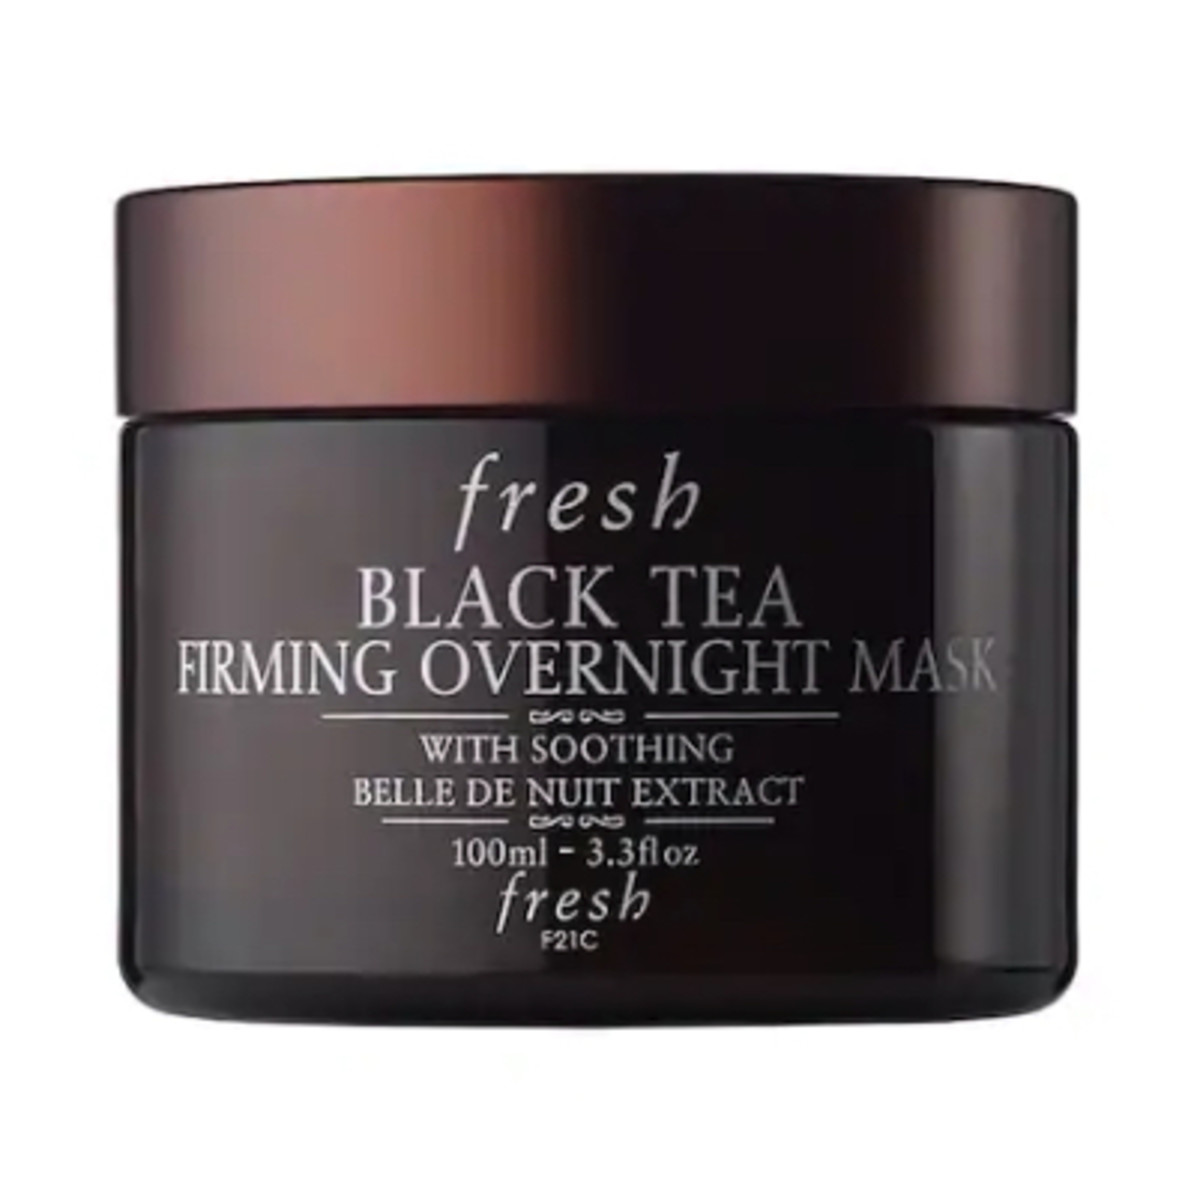 Fresh Black Tea Firming Overnight Mask, $92, available here.